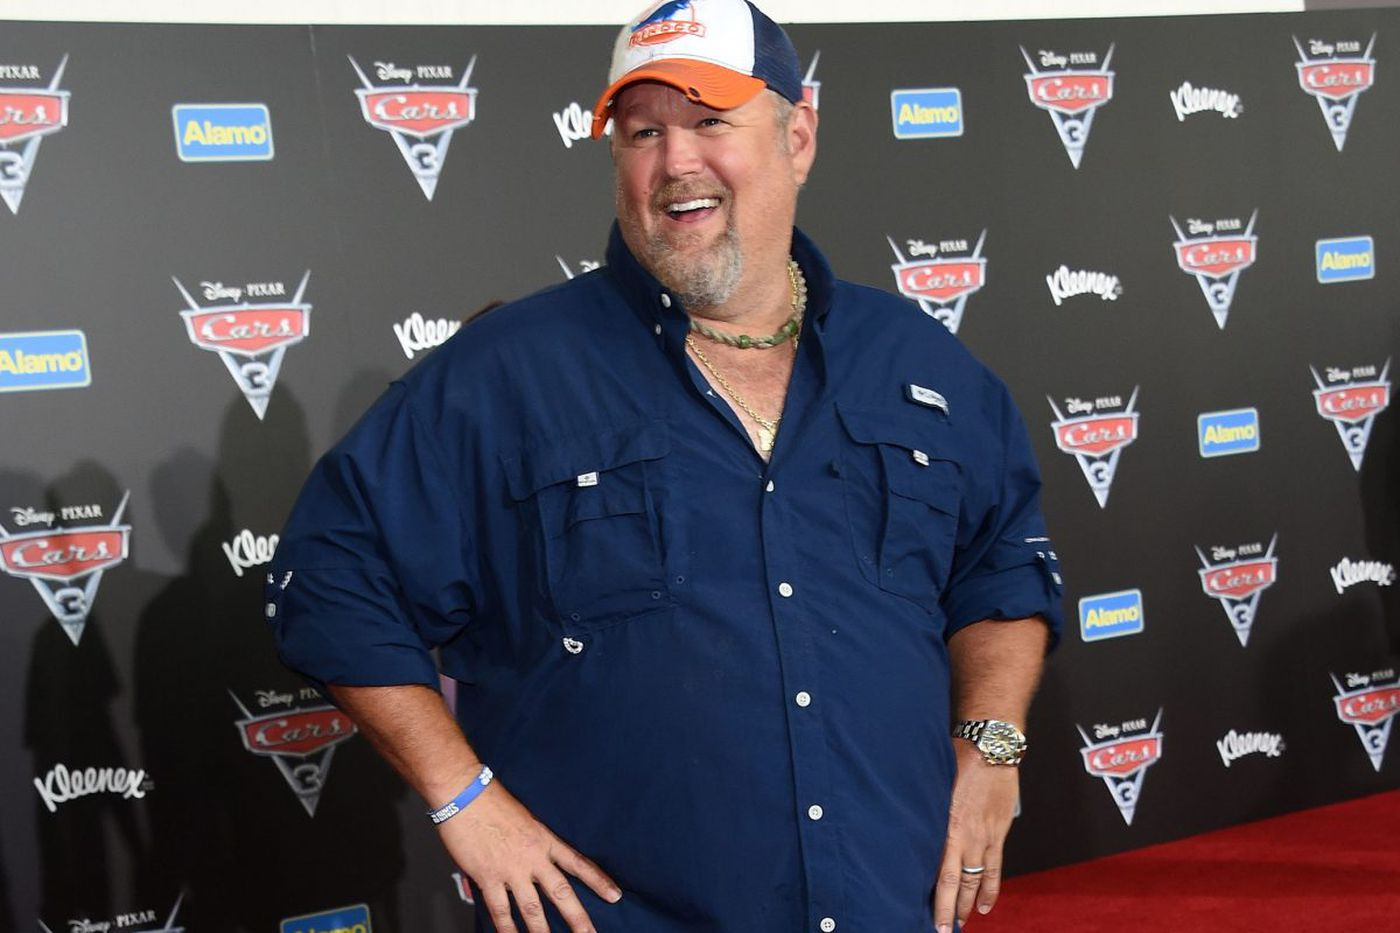 Larry the Cable Guy, the driving force behind the 'Cars' franchise